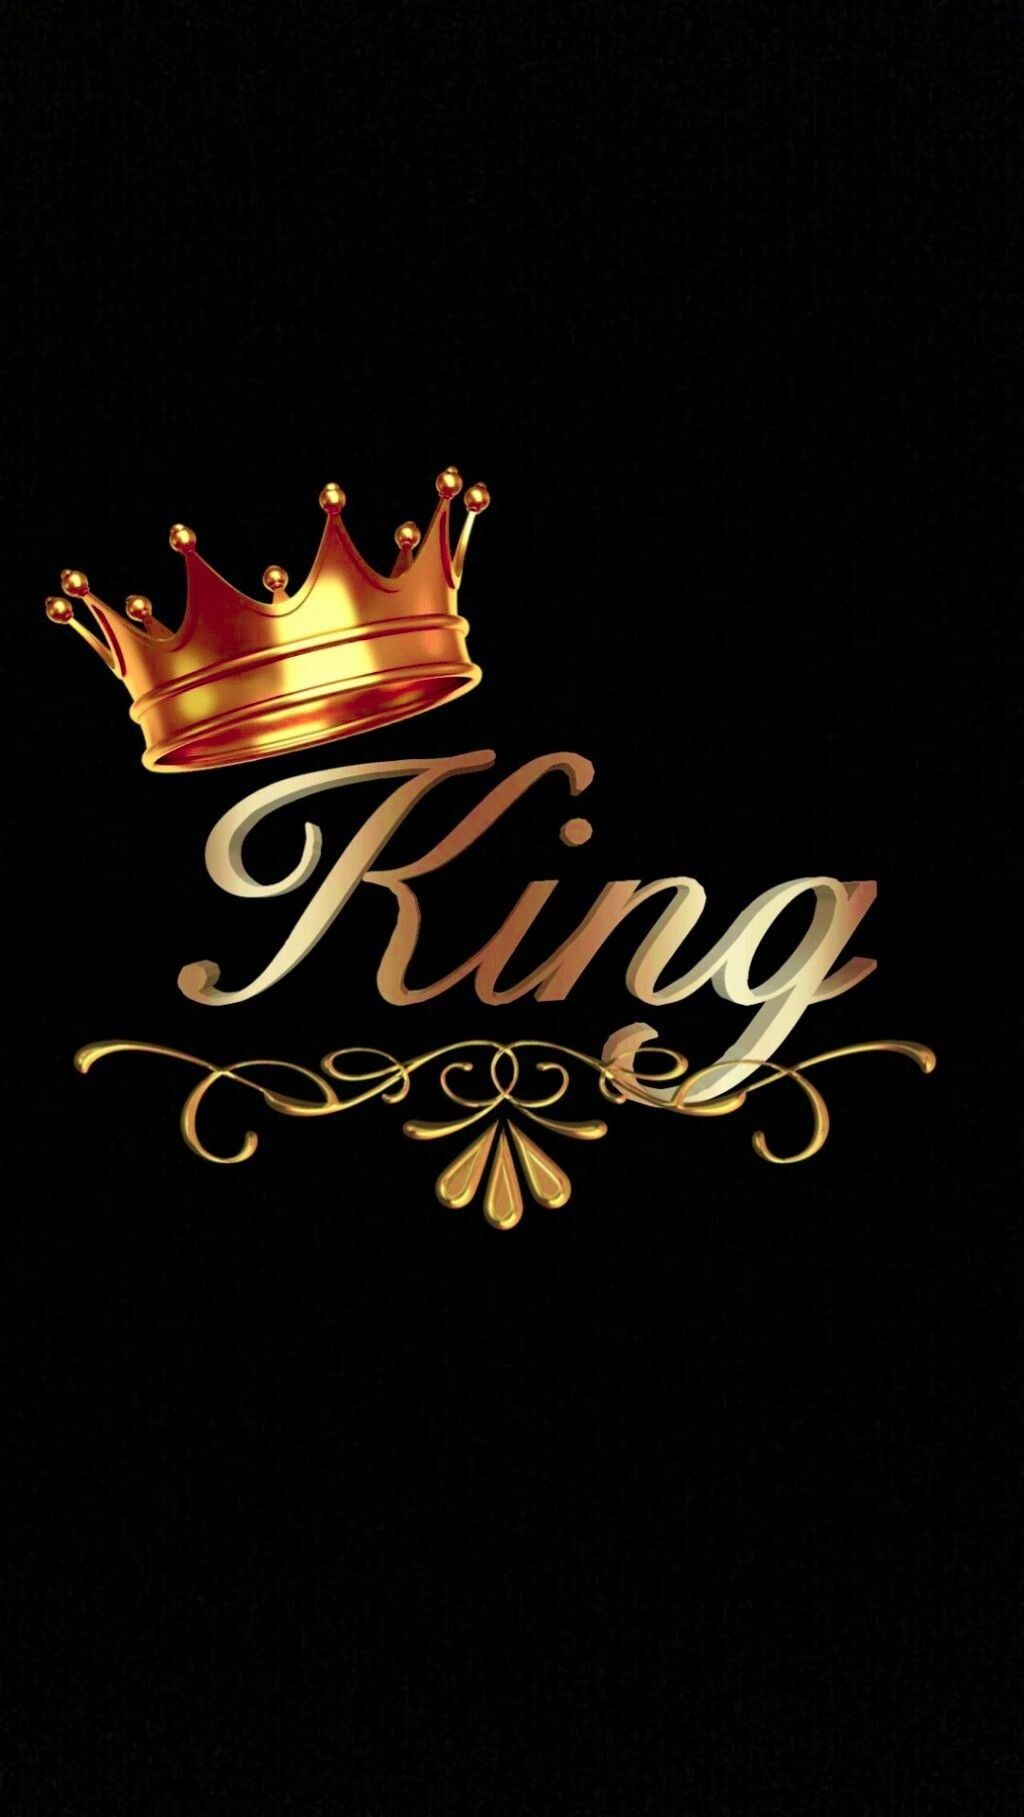 Pin By Angel Gomma On Backgrounds King And Queen Pictures King And Queen Images Pink Queen Wallpaper